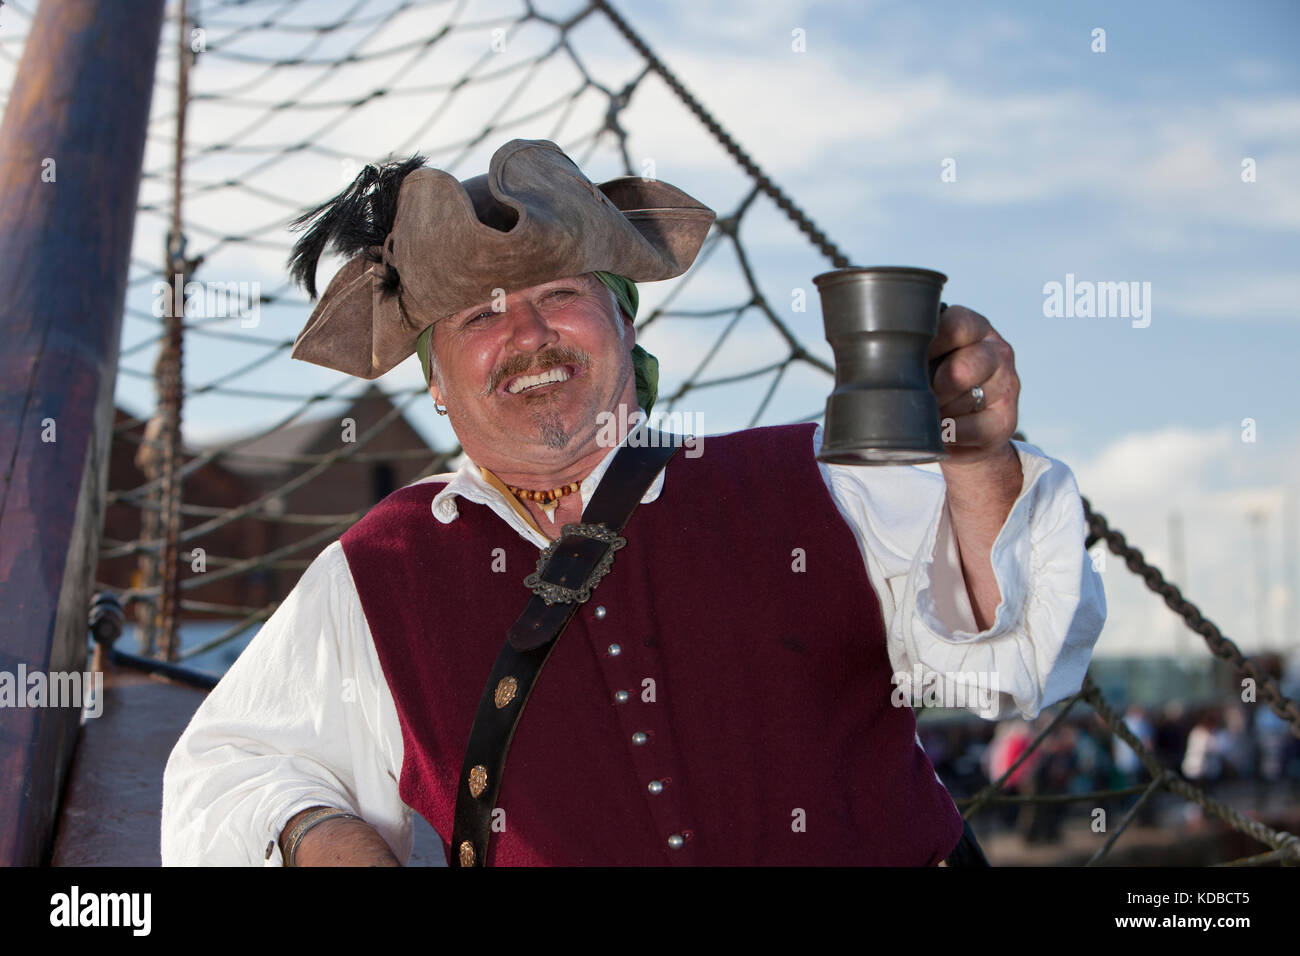 Jolly pirate 'Captain Andreas' holding tankard aboard the Albatross in Wells harbour. - Stock Image